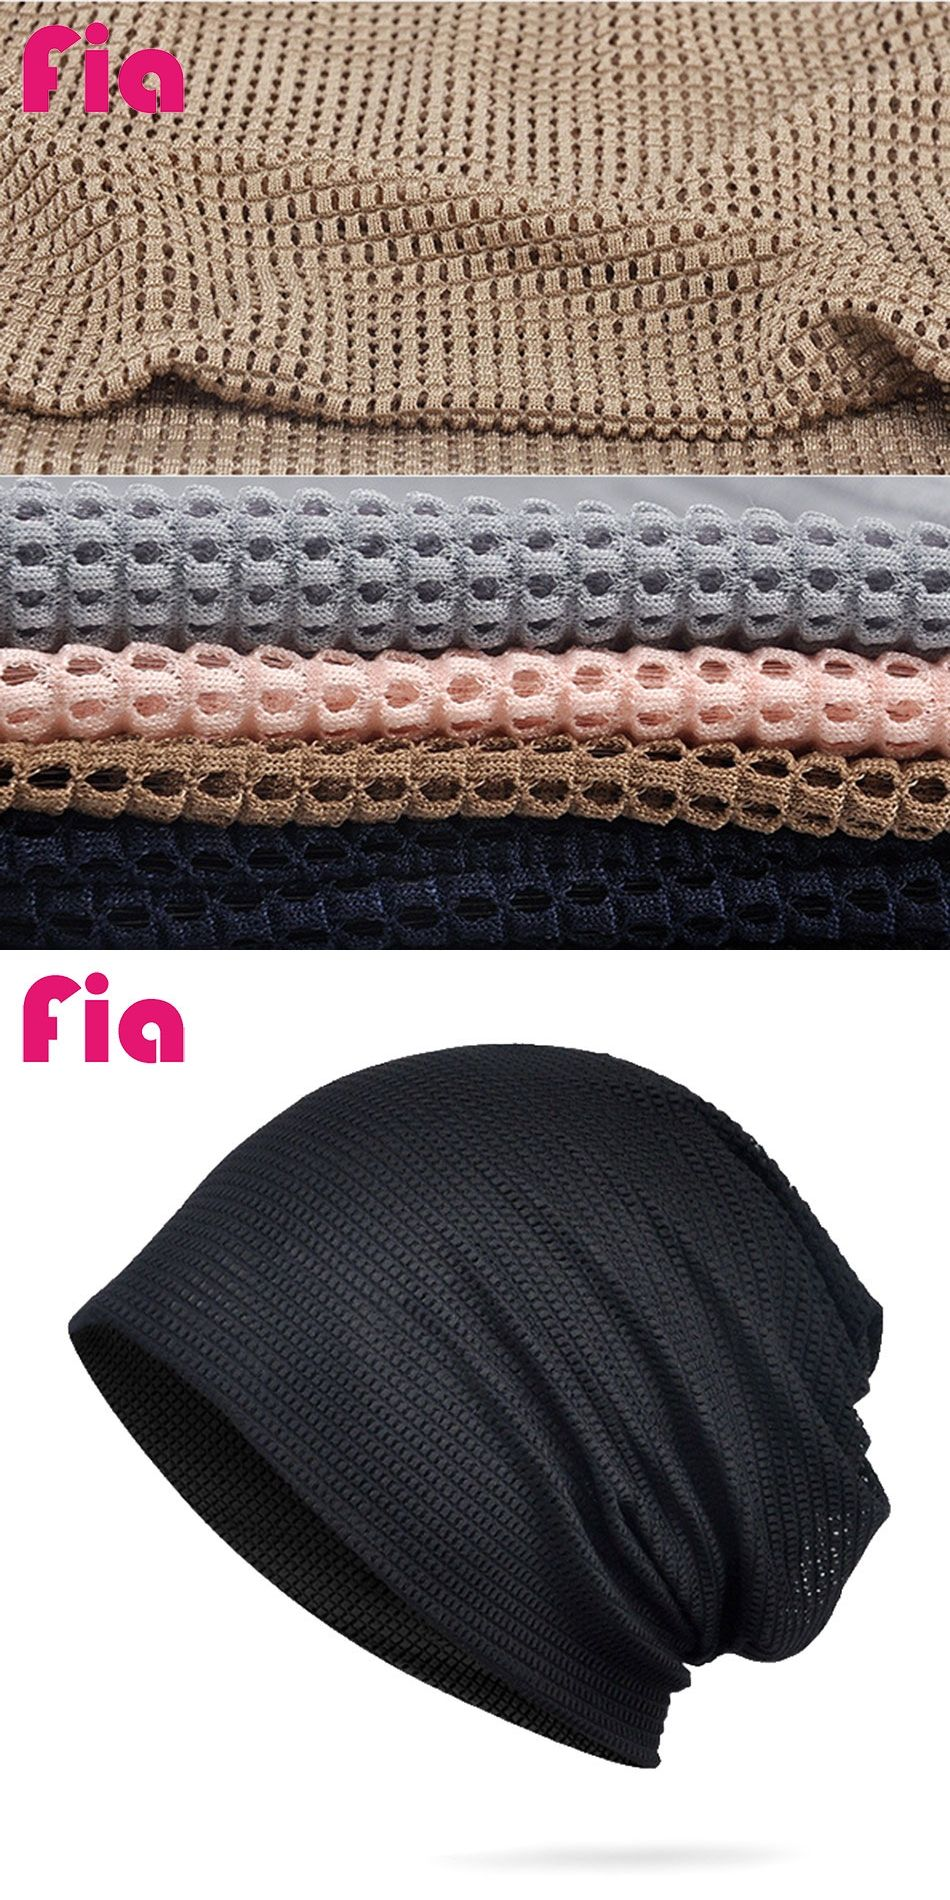 2f278ec520328 FIA Unisex Double 2 Used Hats for Men and Women Thin Caps Solid Color with  Ventilate Mesh Grid Polyester Autumn Winter ZY3039